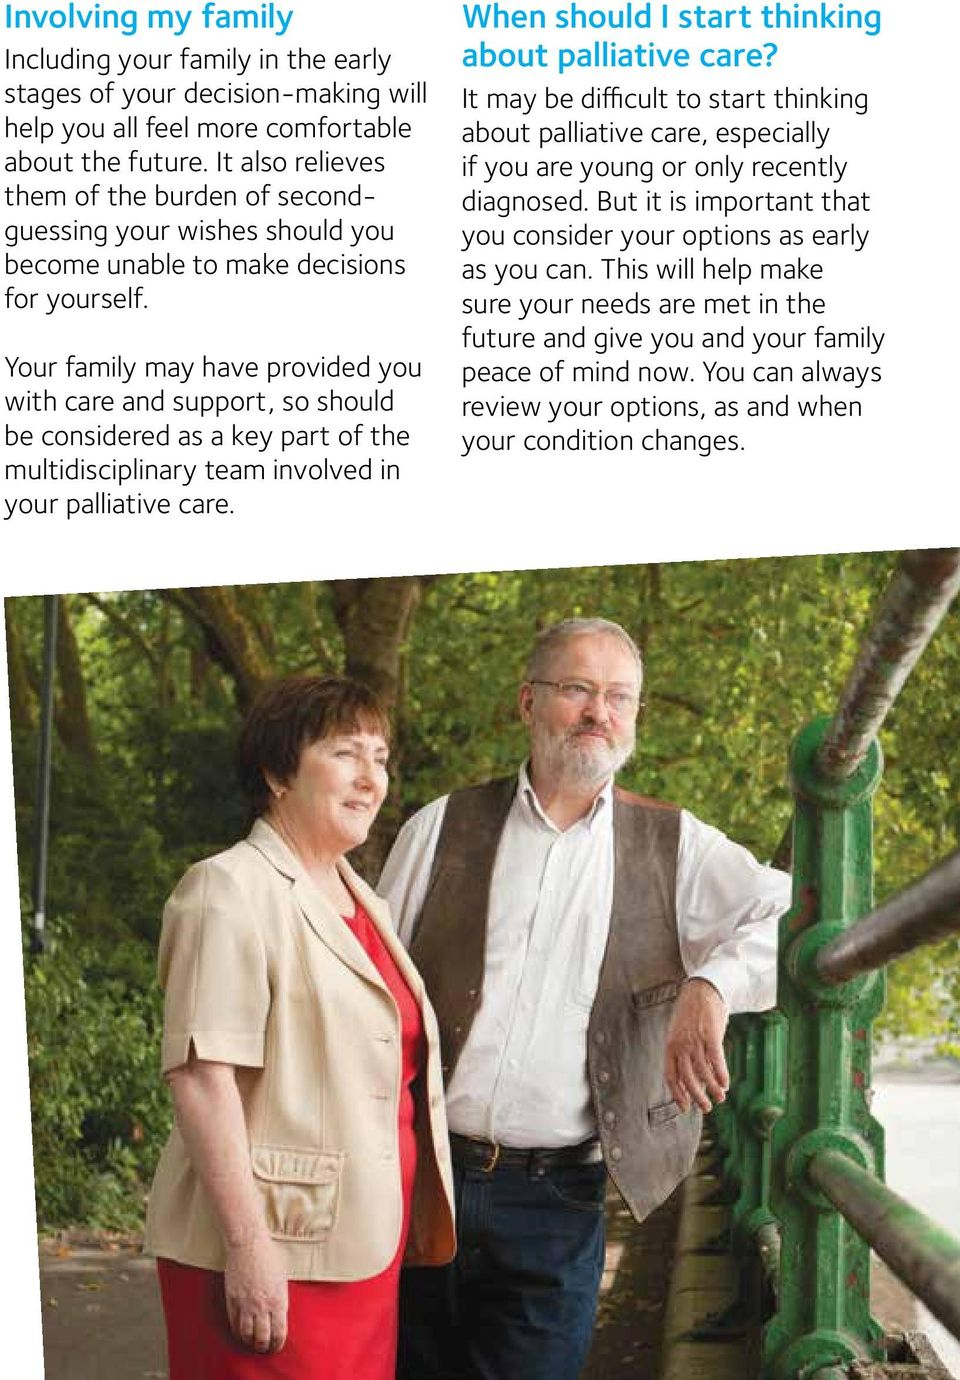 Your family may have provided you with care and support, so should be considered as a key part of the multidisciplinary team involved in your palliative care.